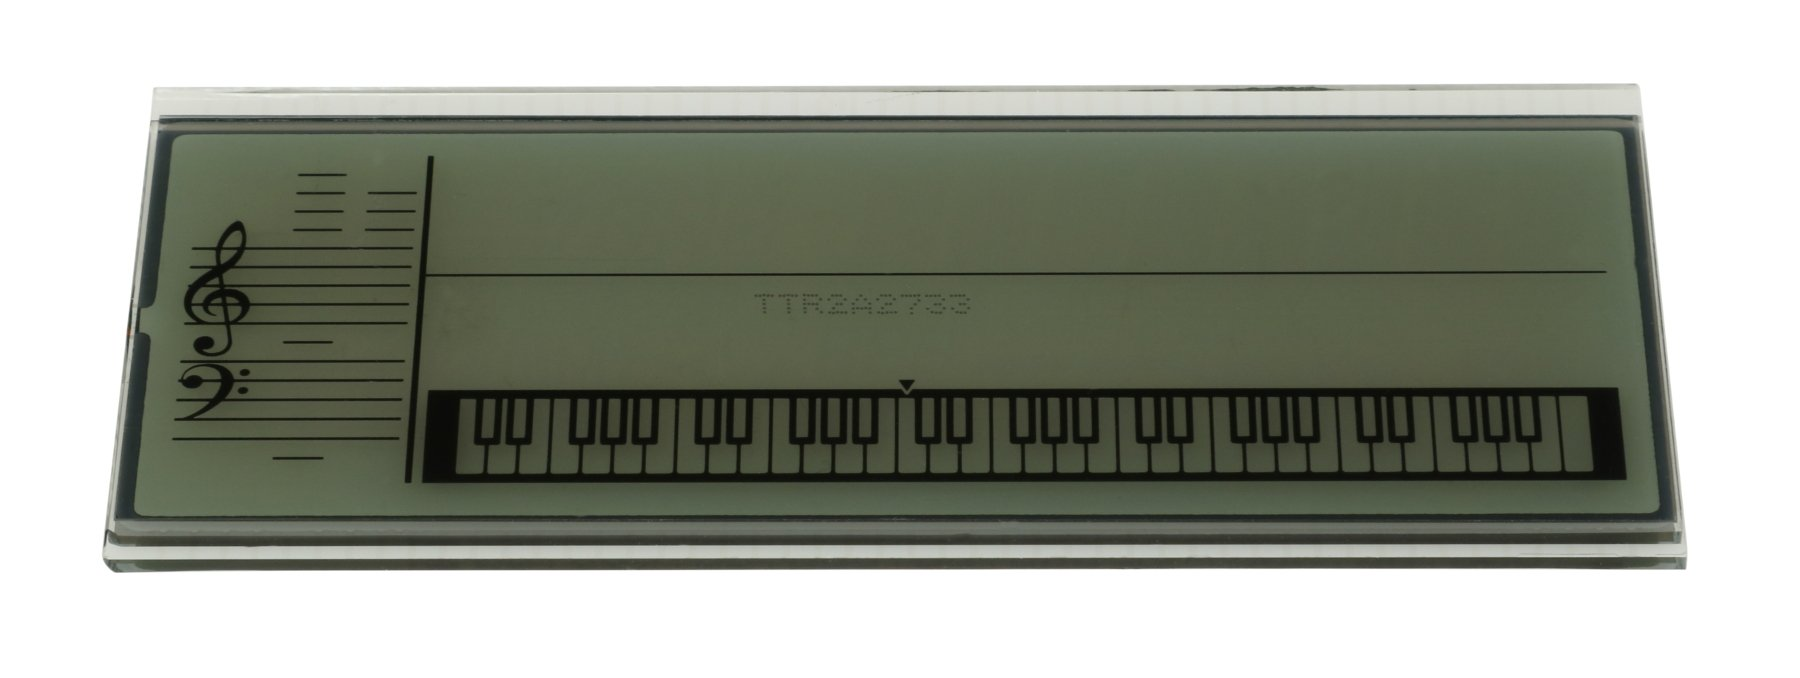 LCD Display for PSR-E353